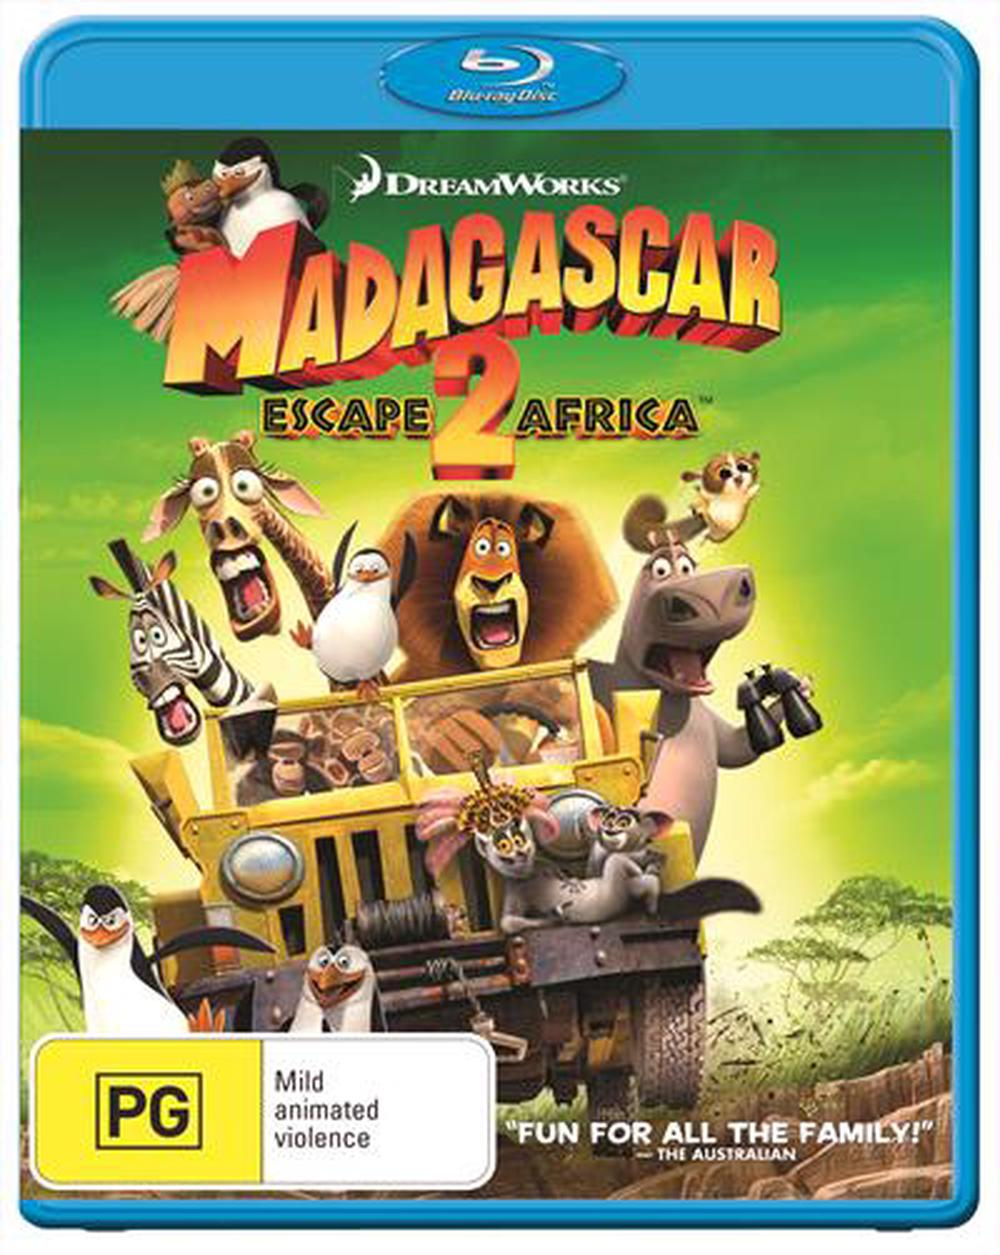 Madagascar Escape 2 Africa Blu Ray Buy Online At The Nile